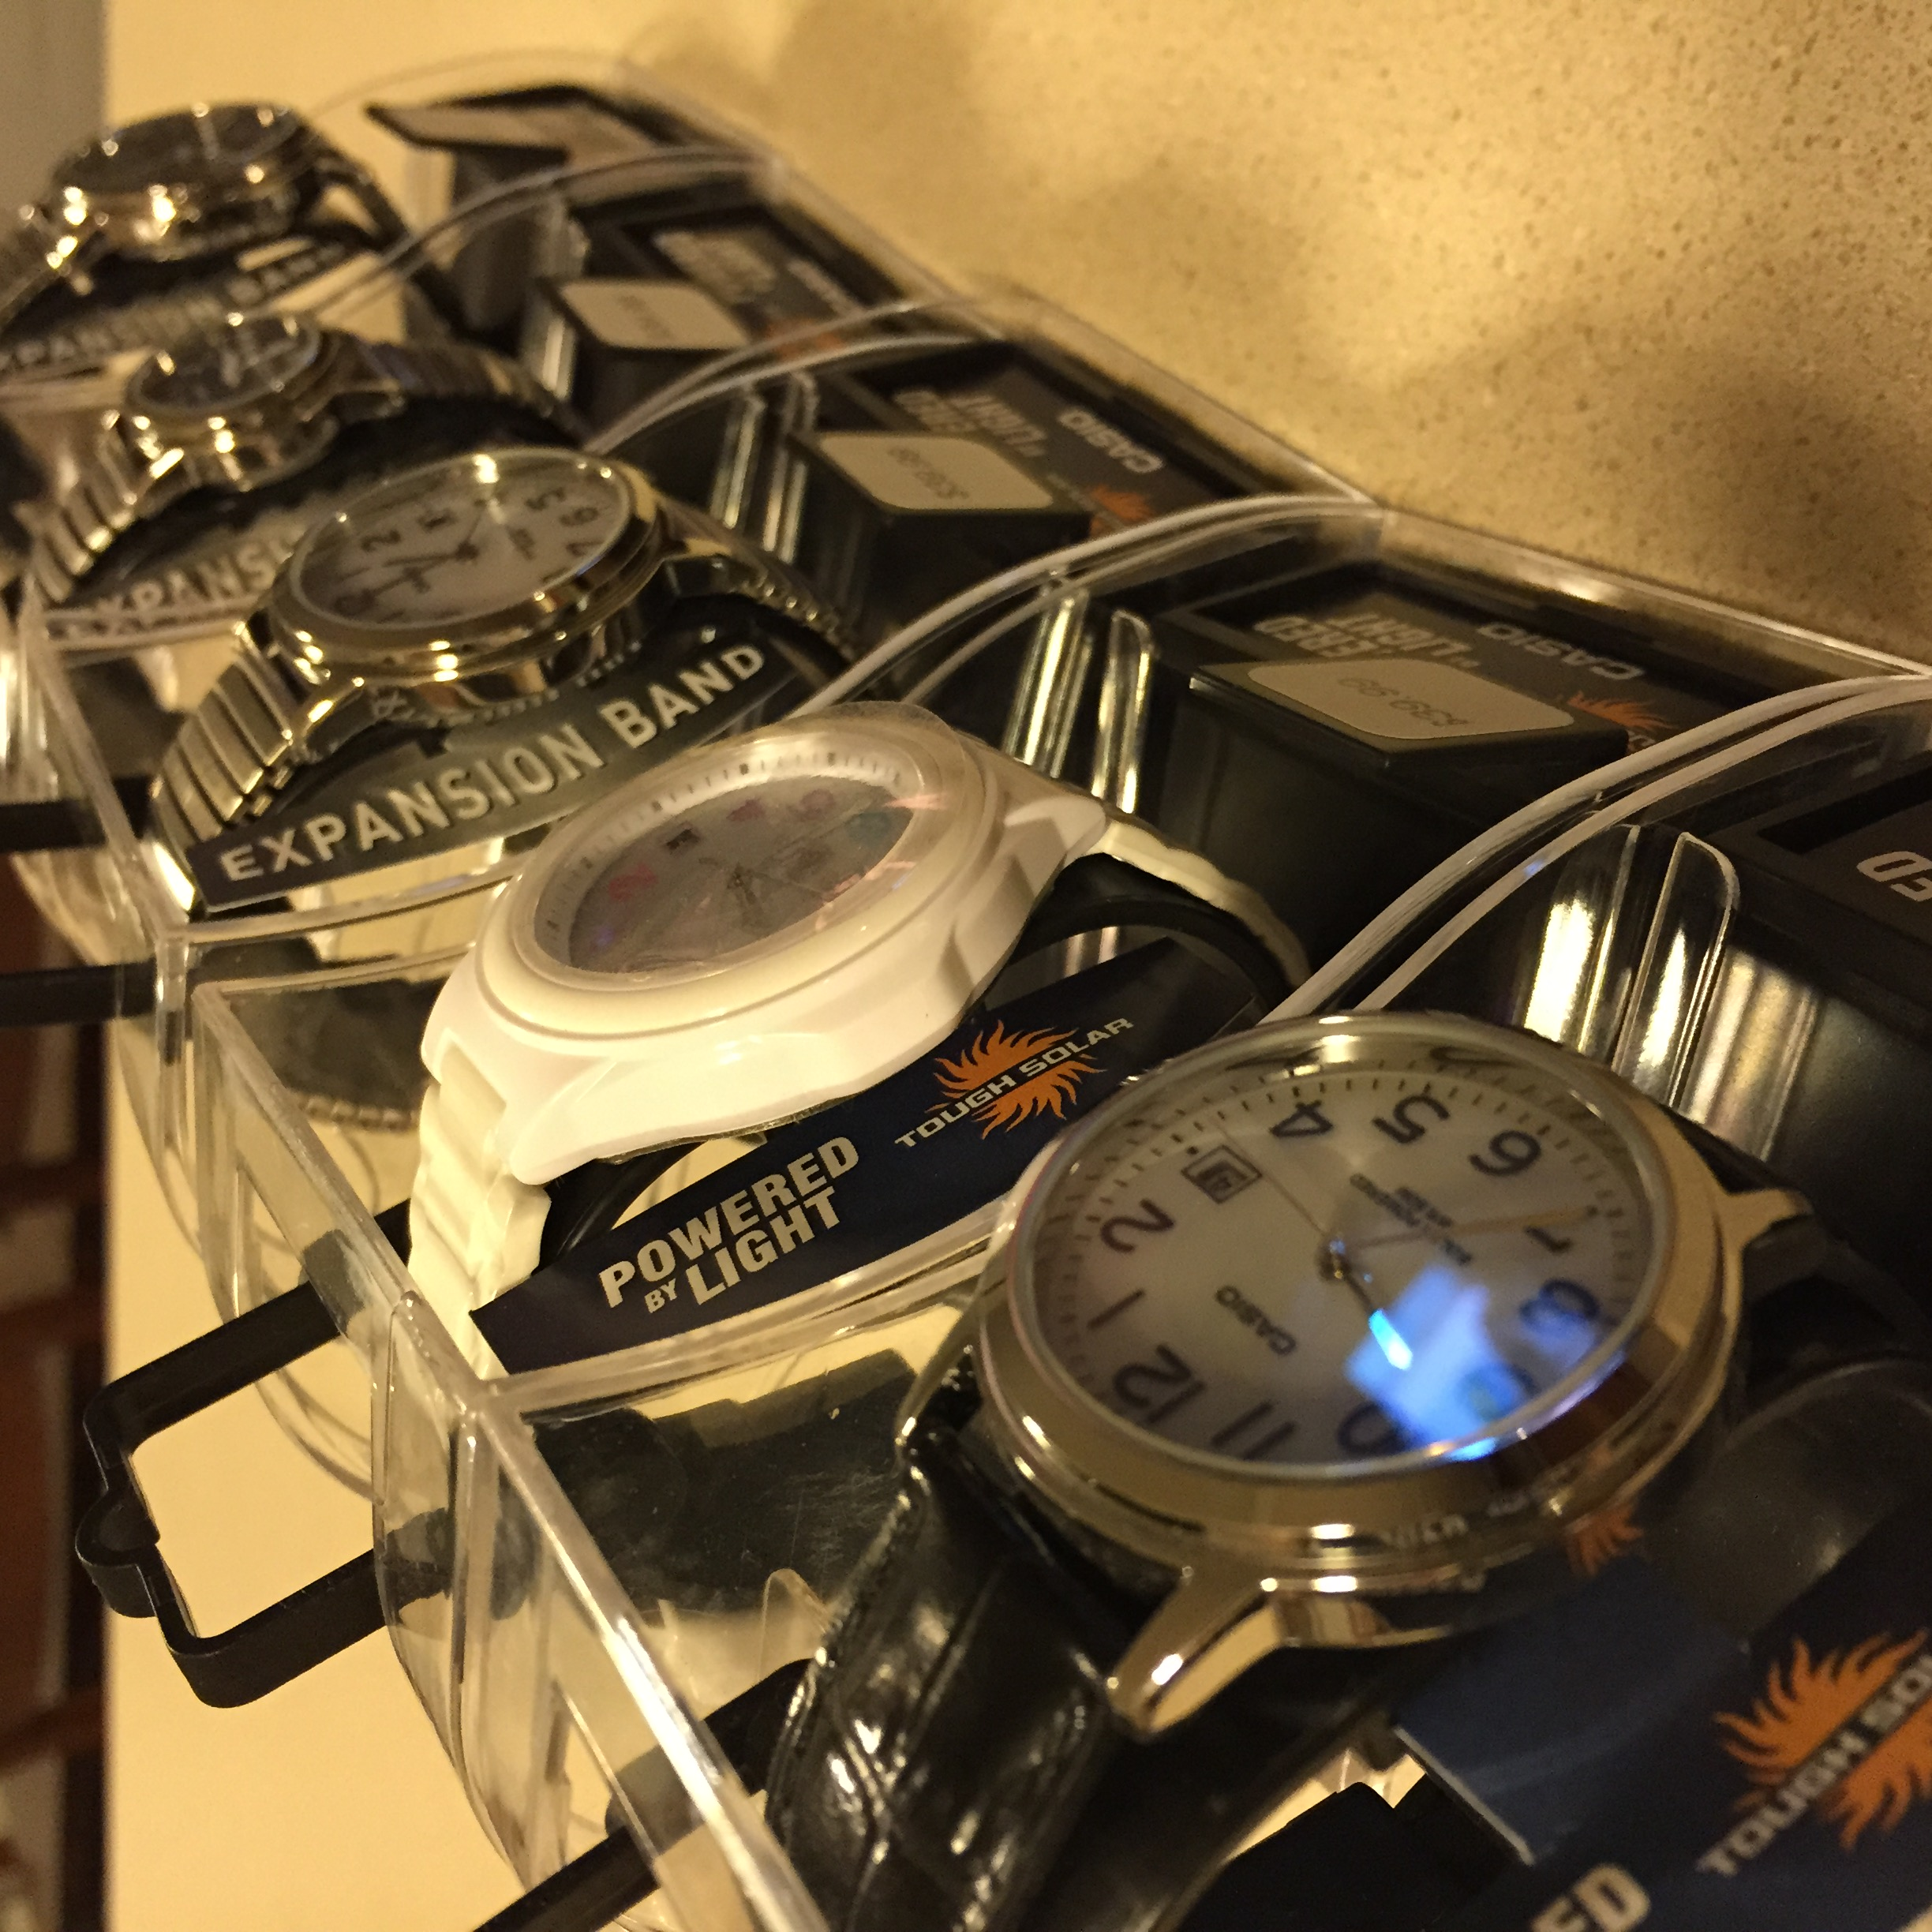 New watches for our LandMine Design ladies...